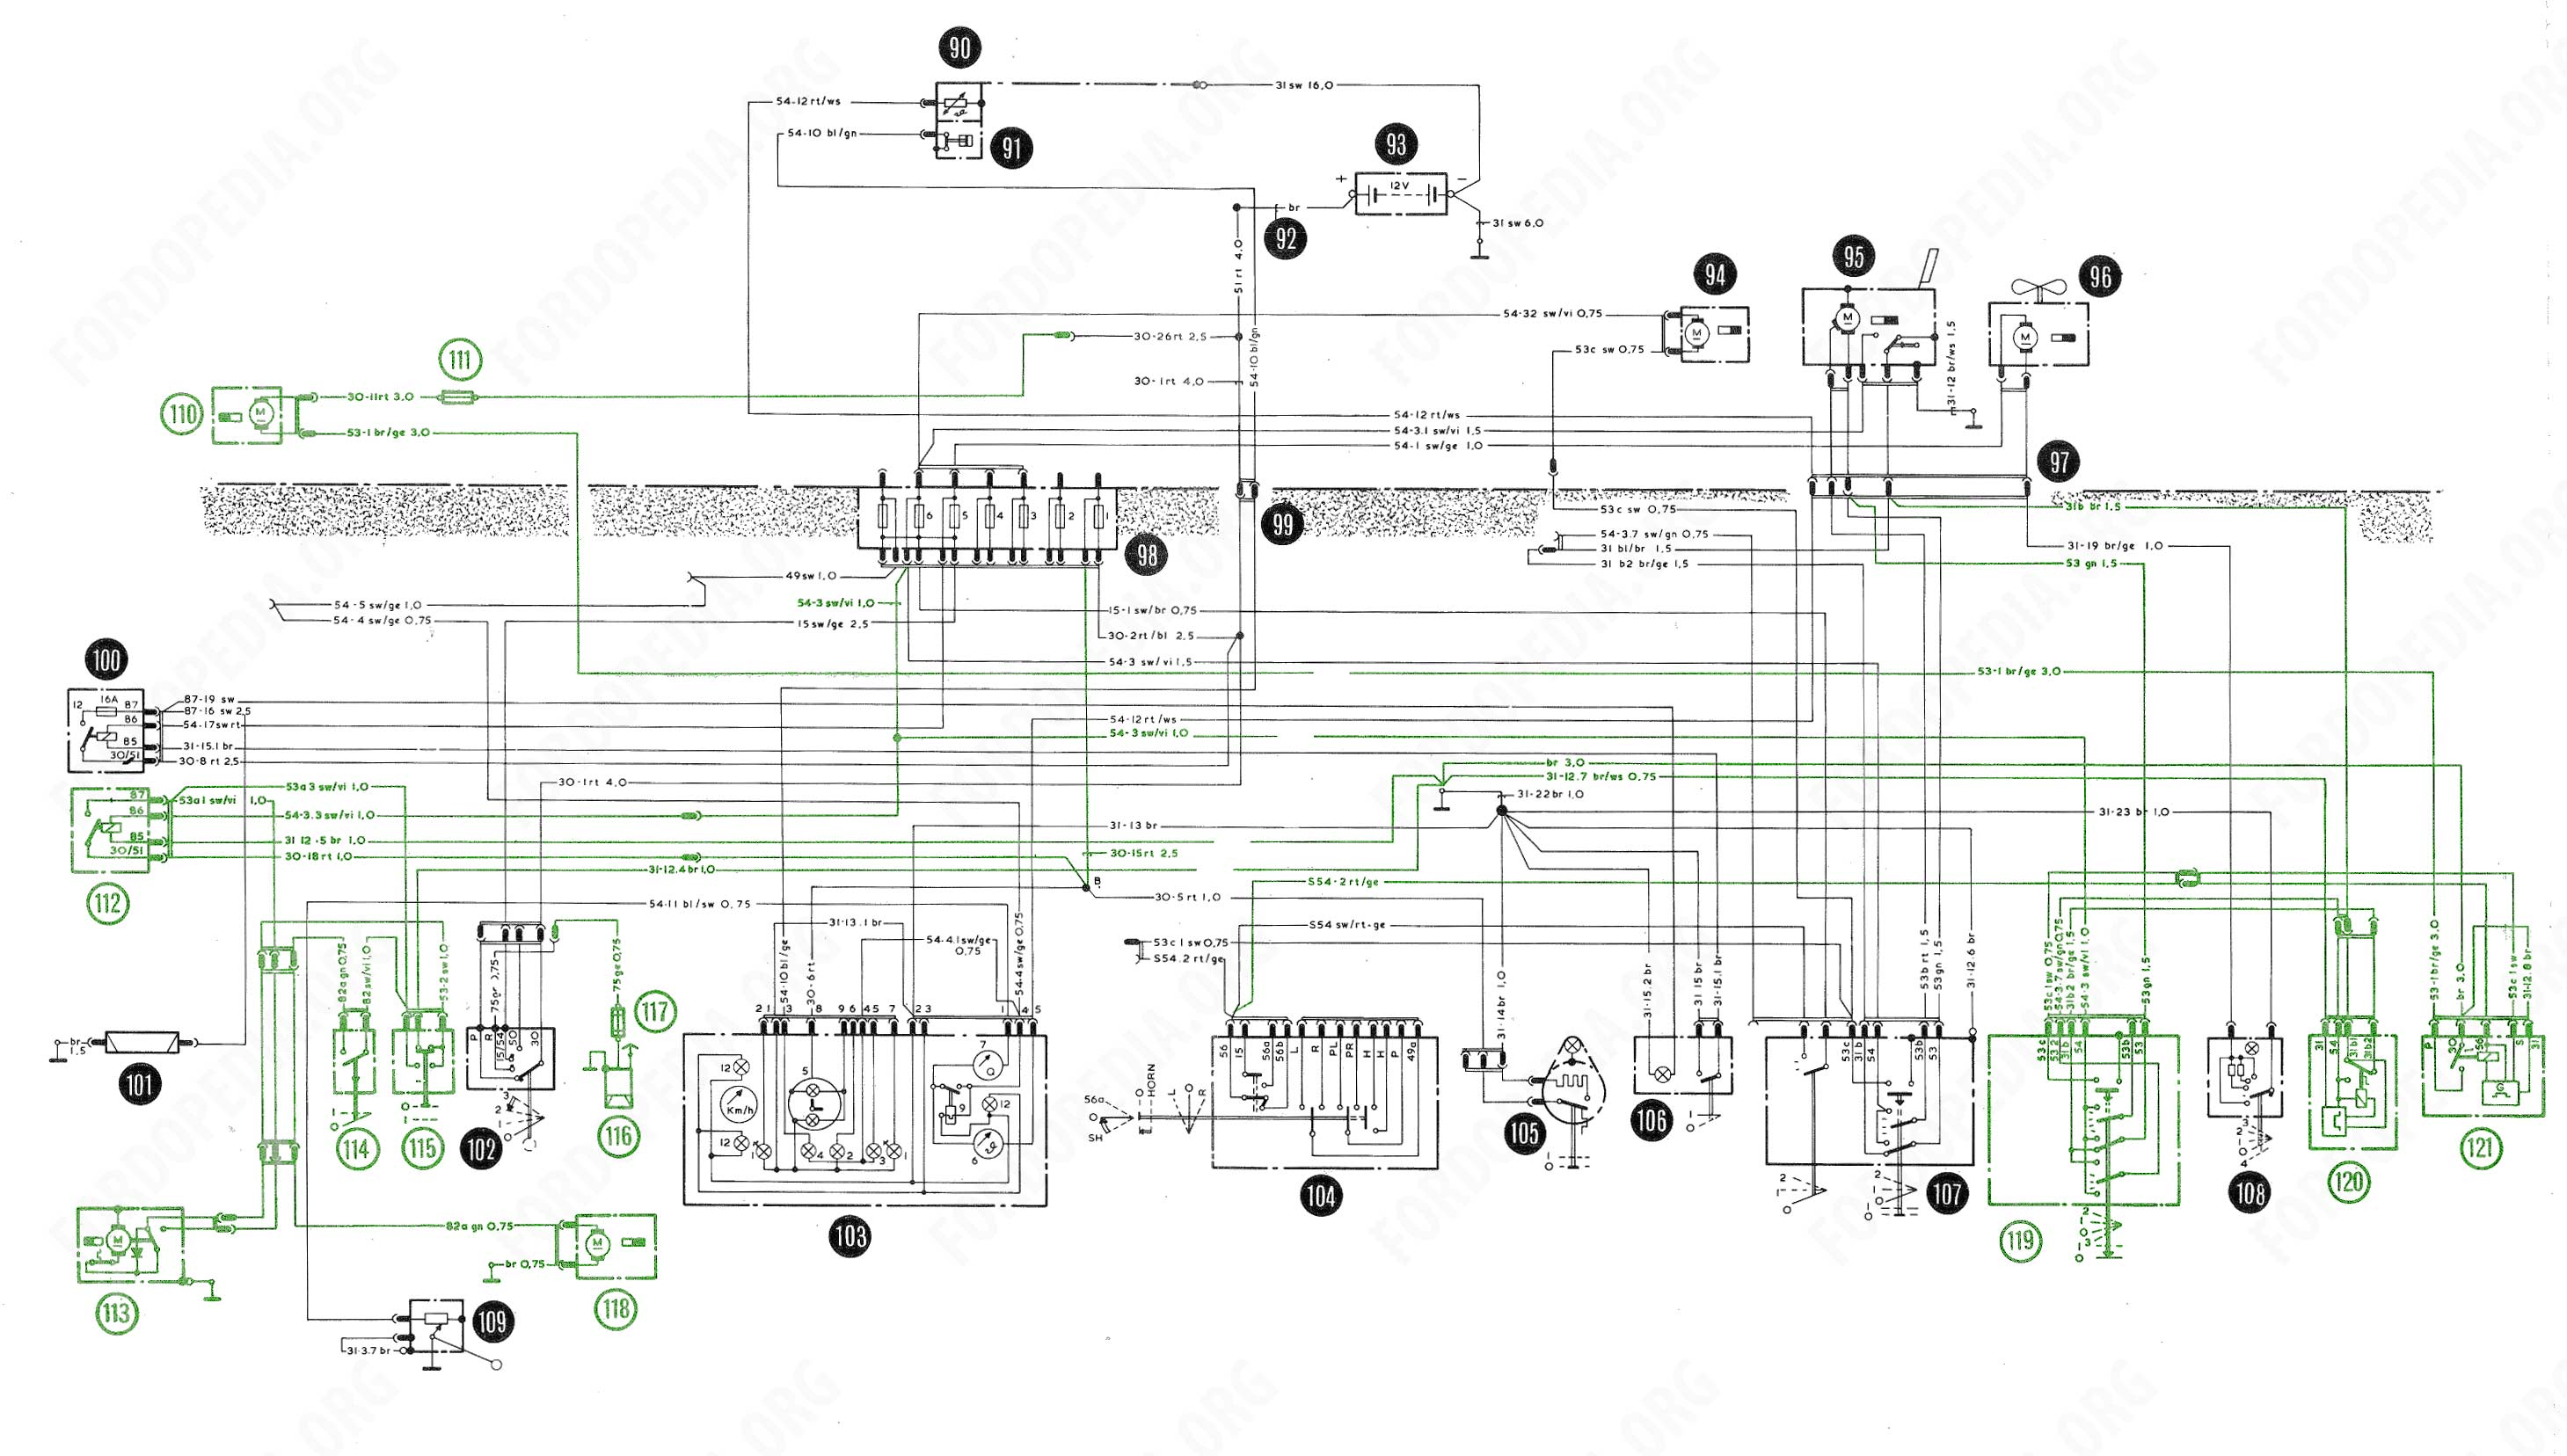 fordopedia org full size image 2919x1656 412 kb wiring diagrams taunus tc2 cortina mk4 base version l version gl